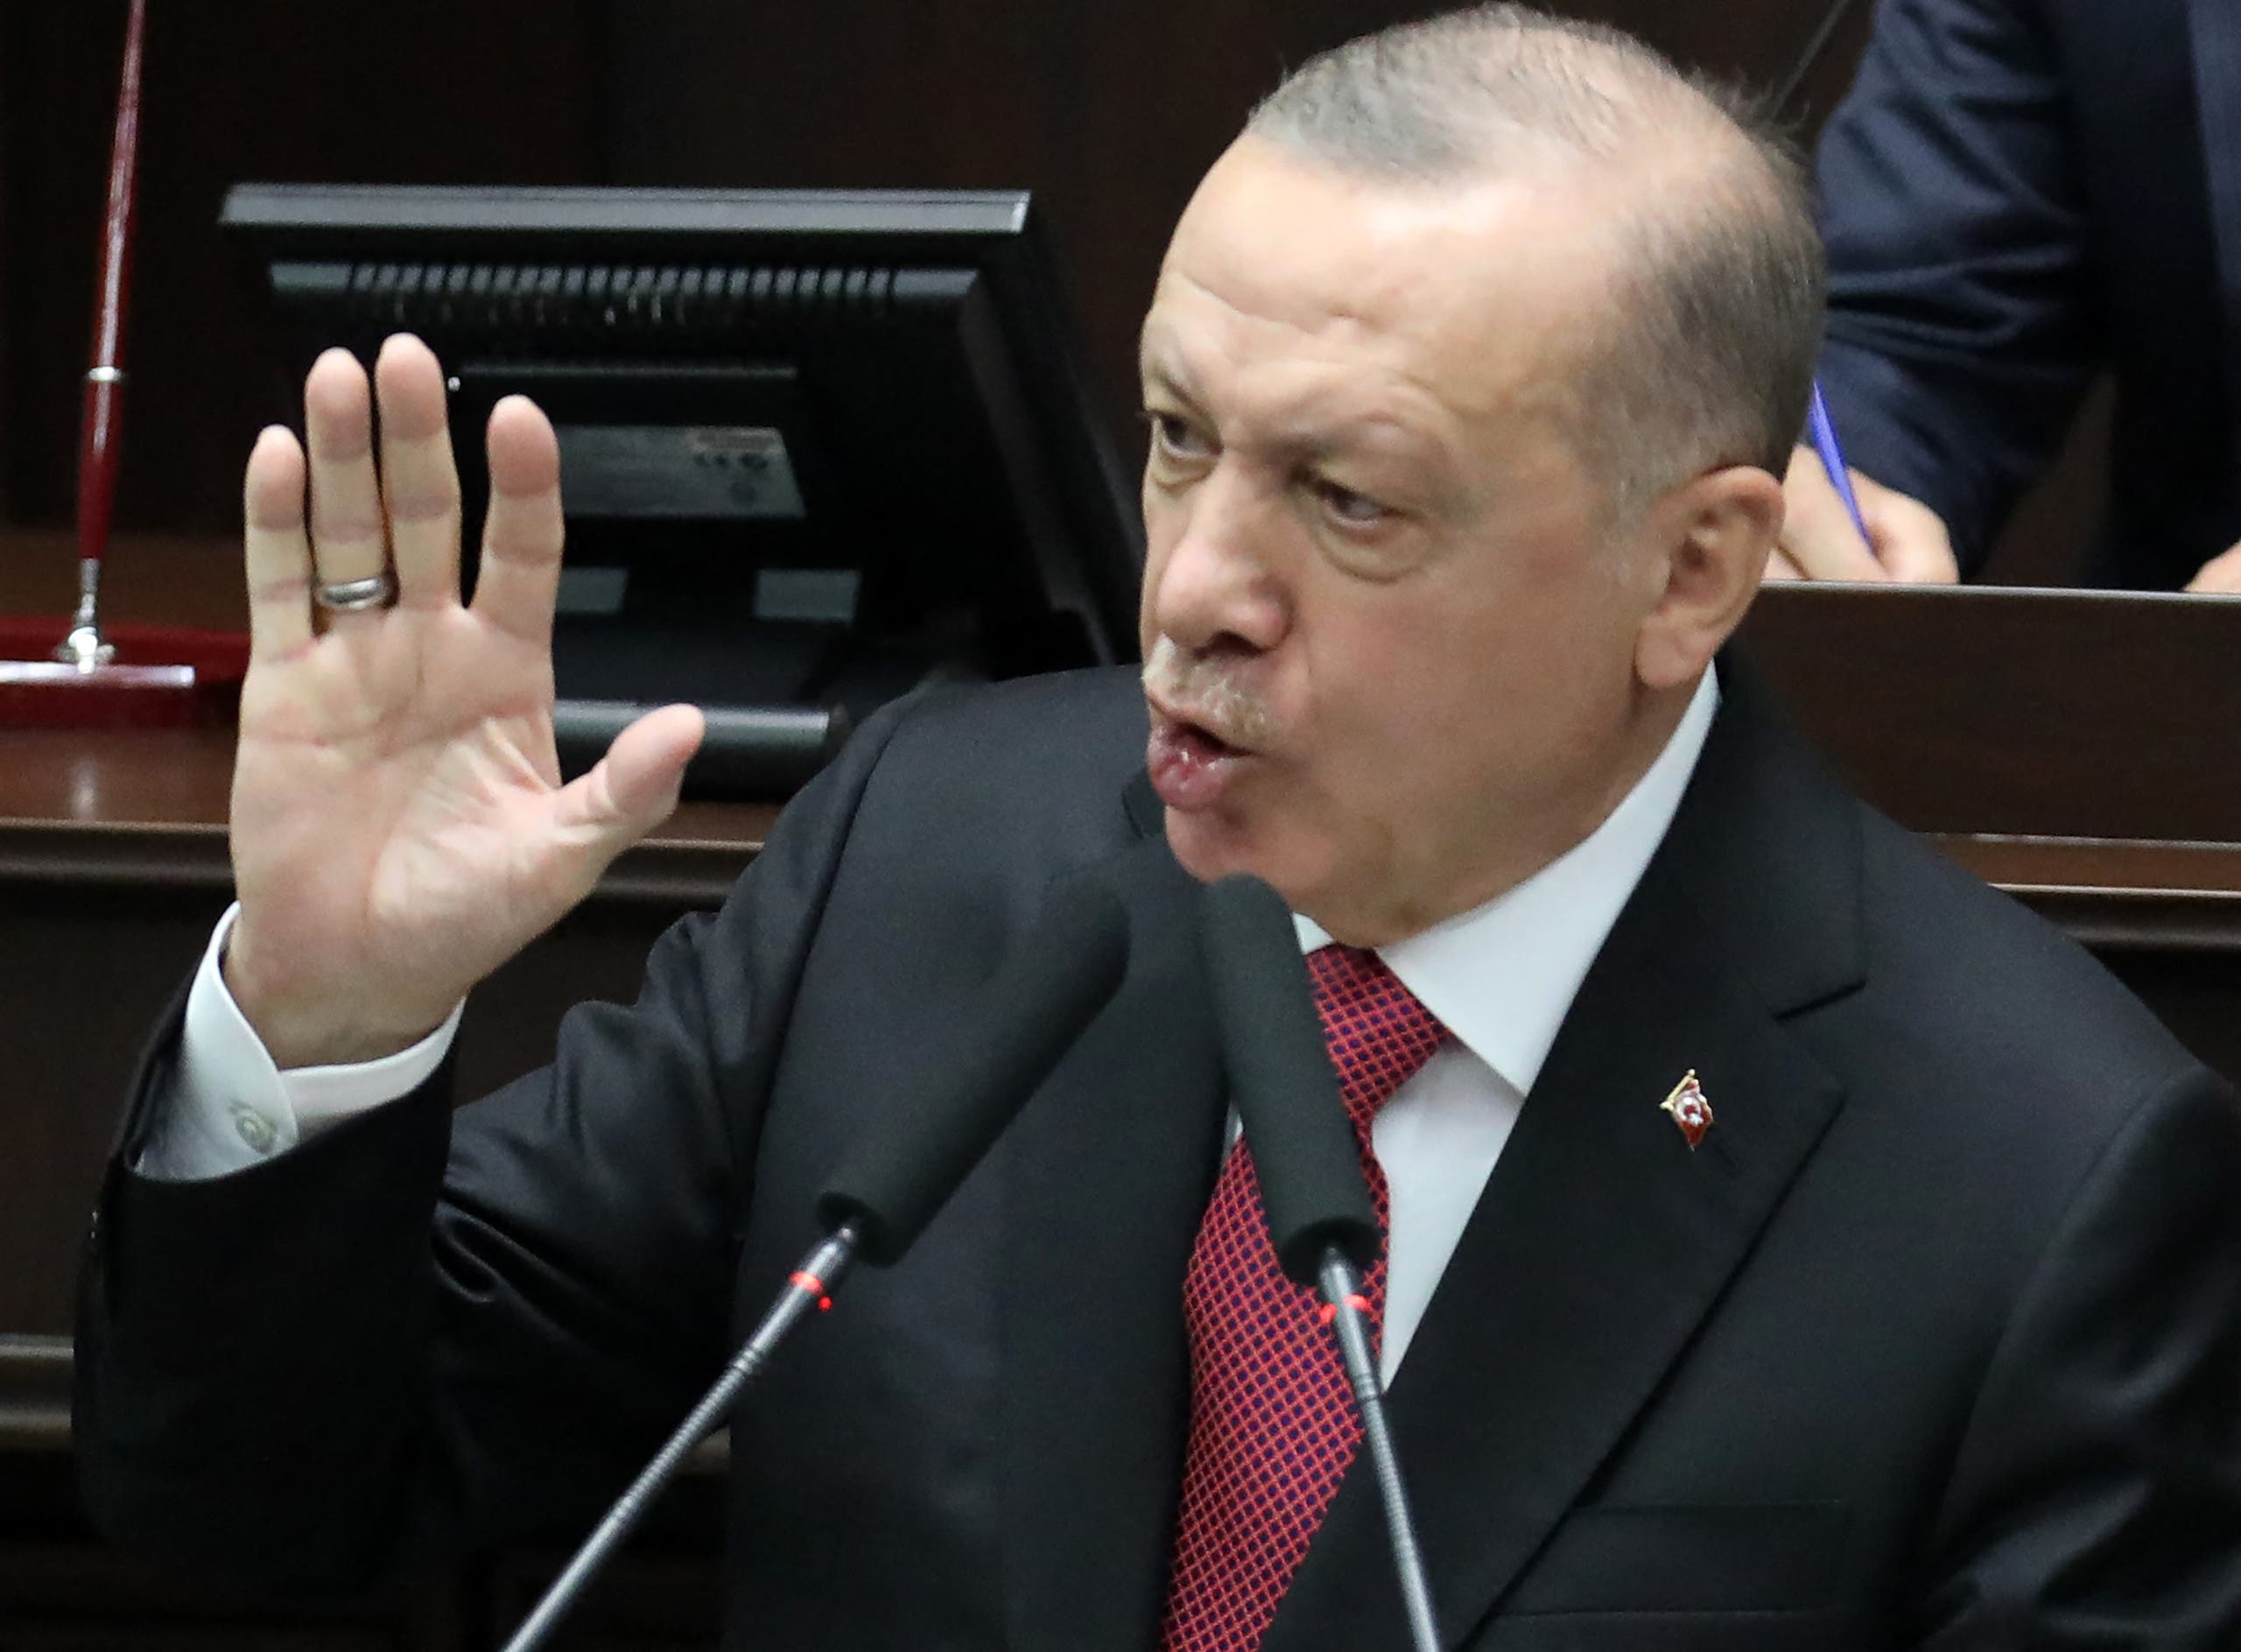 Turkish President and leader of Justice and Development (AK) ruling Party Recep Tayyip Erdogan speaks during a party group meeting at the Grand National Assembly of Turkey (GNAT), in Ankara on June 9, 2021. (Stock image)